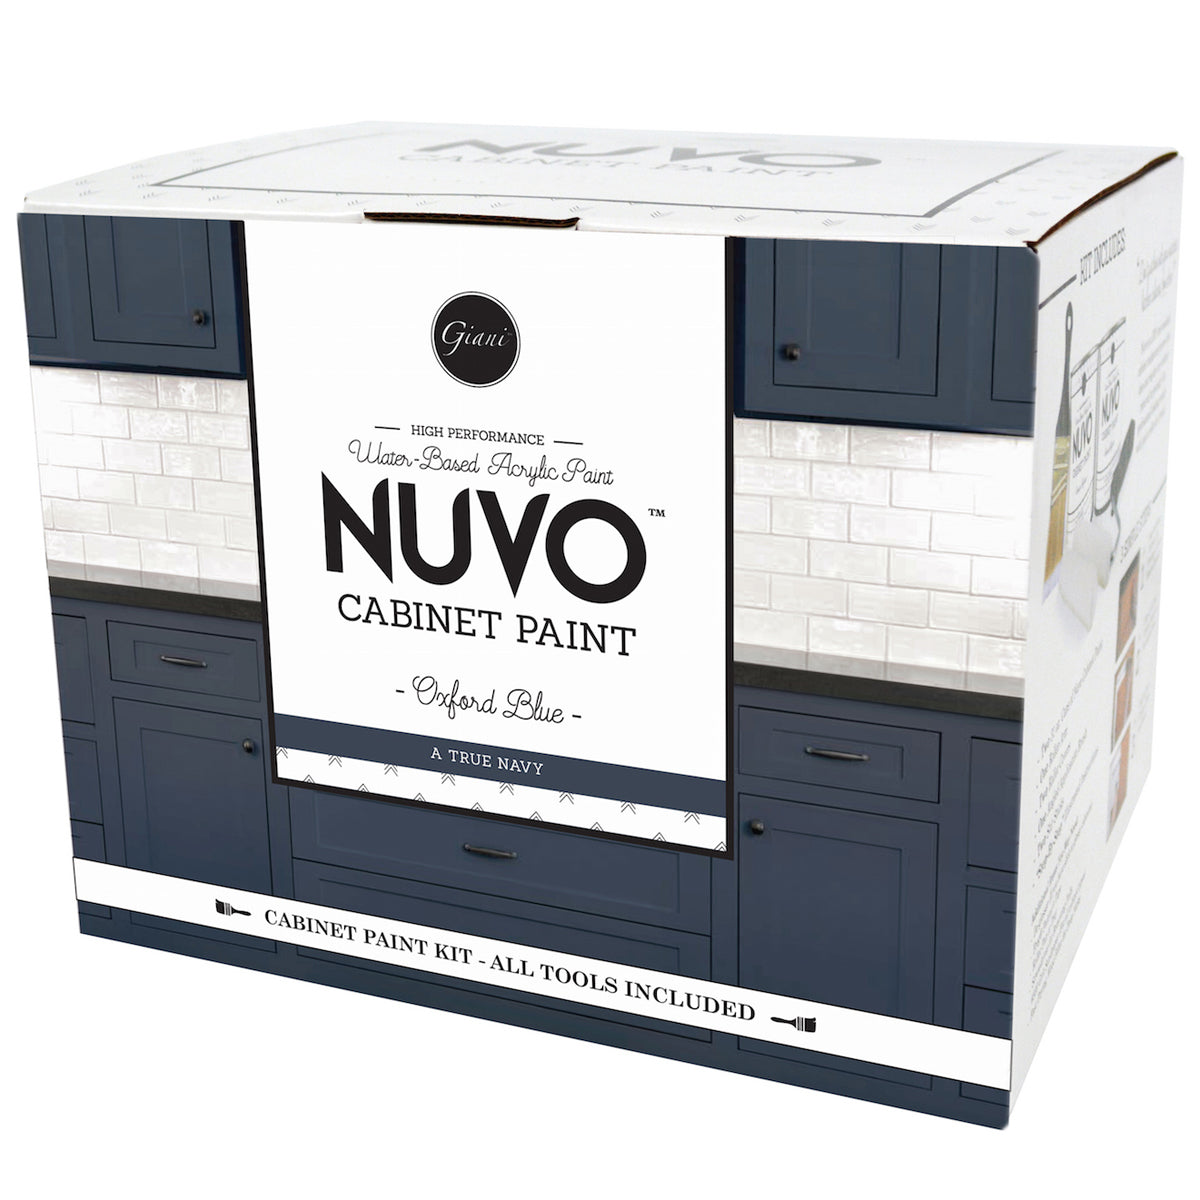 Bon Nuvo Oxford Blue Cabinet Paint Kit